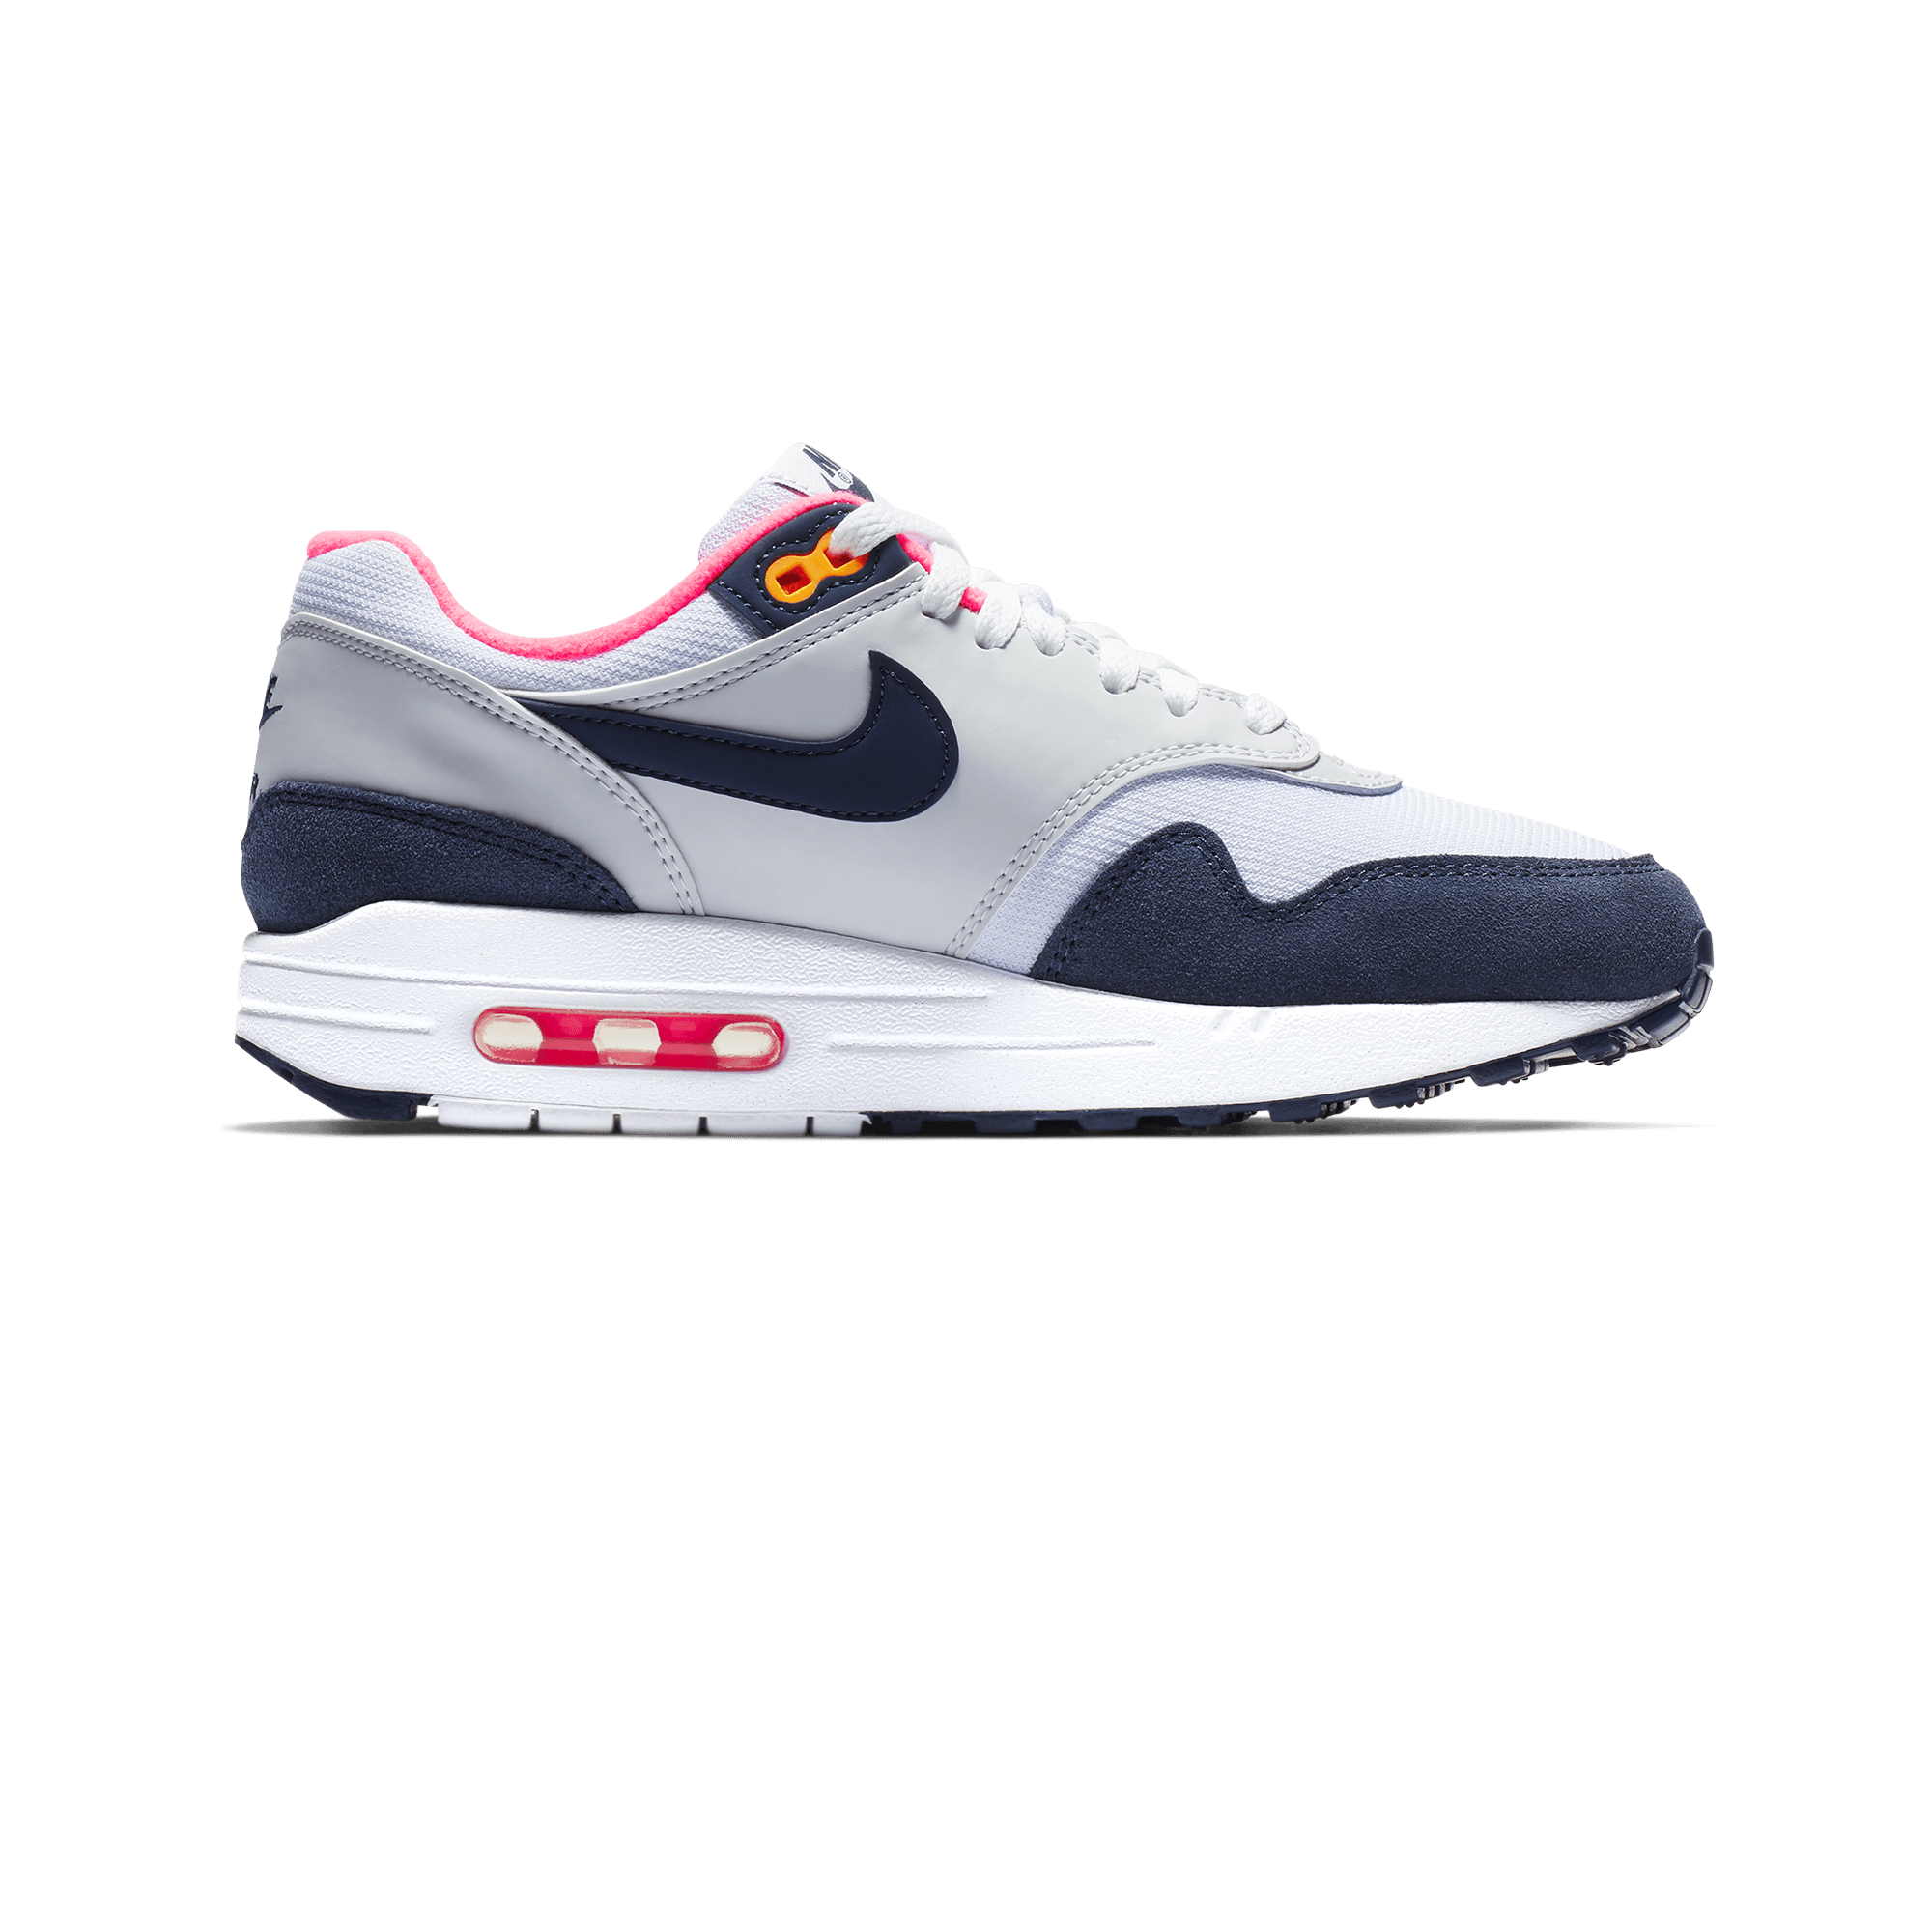 where can i buy shades of fashion style Nike Air Max 1 white / midnight navy / pure platinum - Woman |  Holypopstore.com